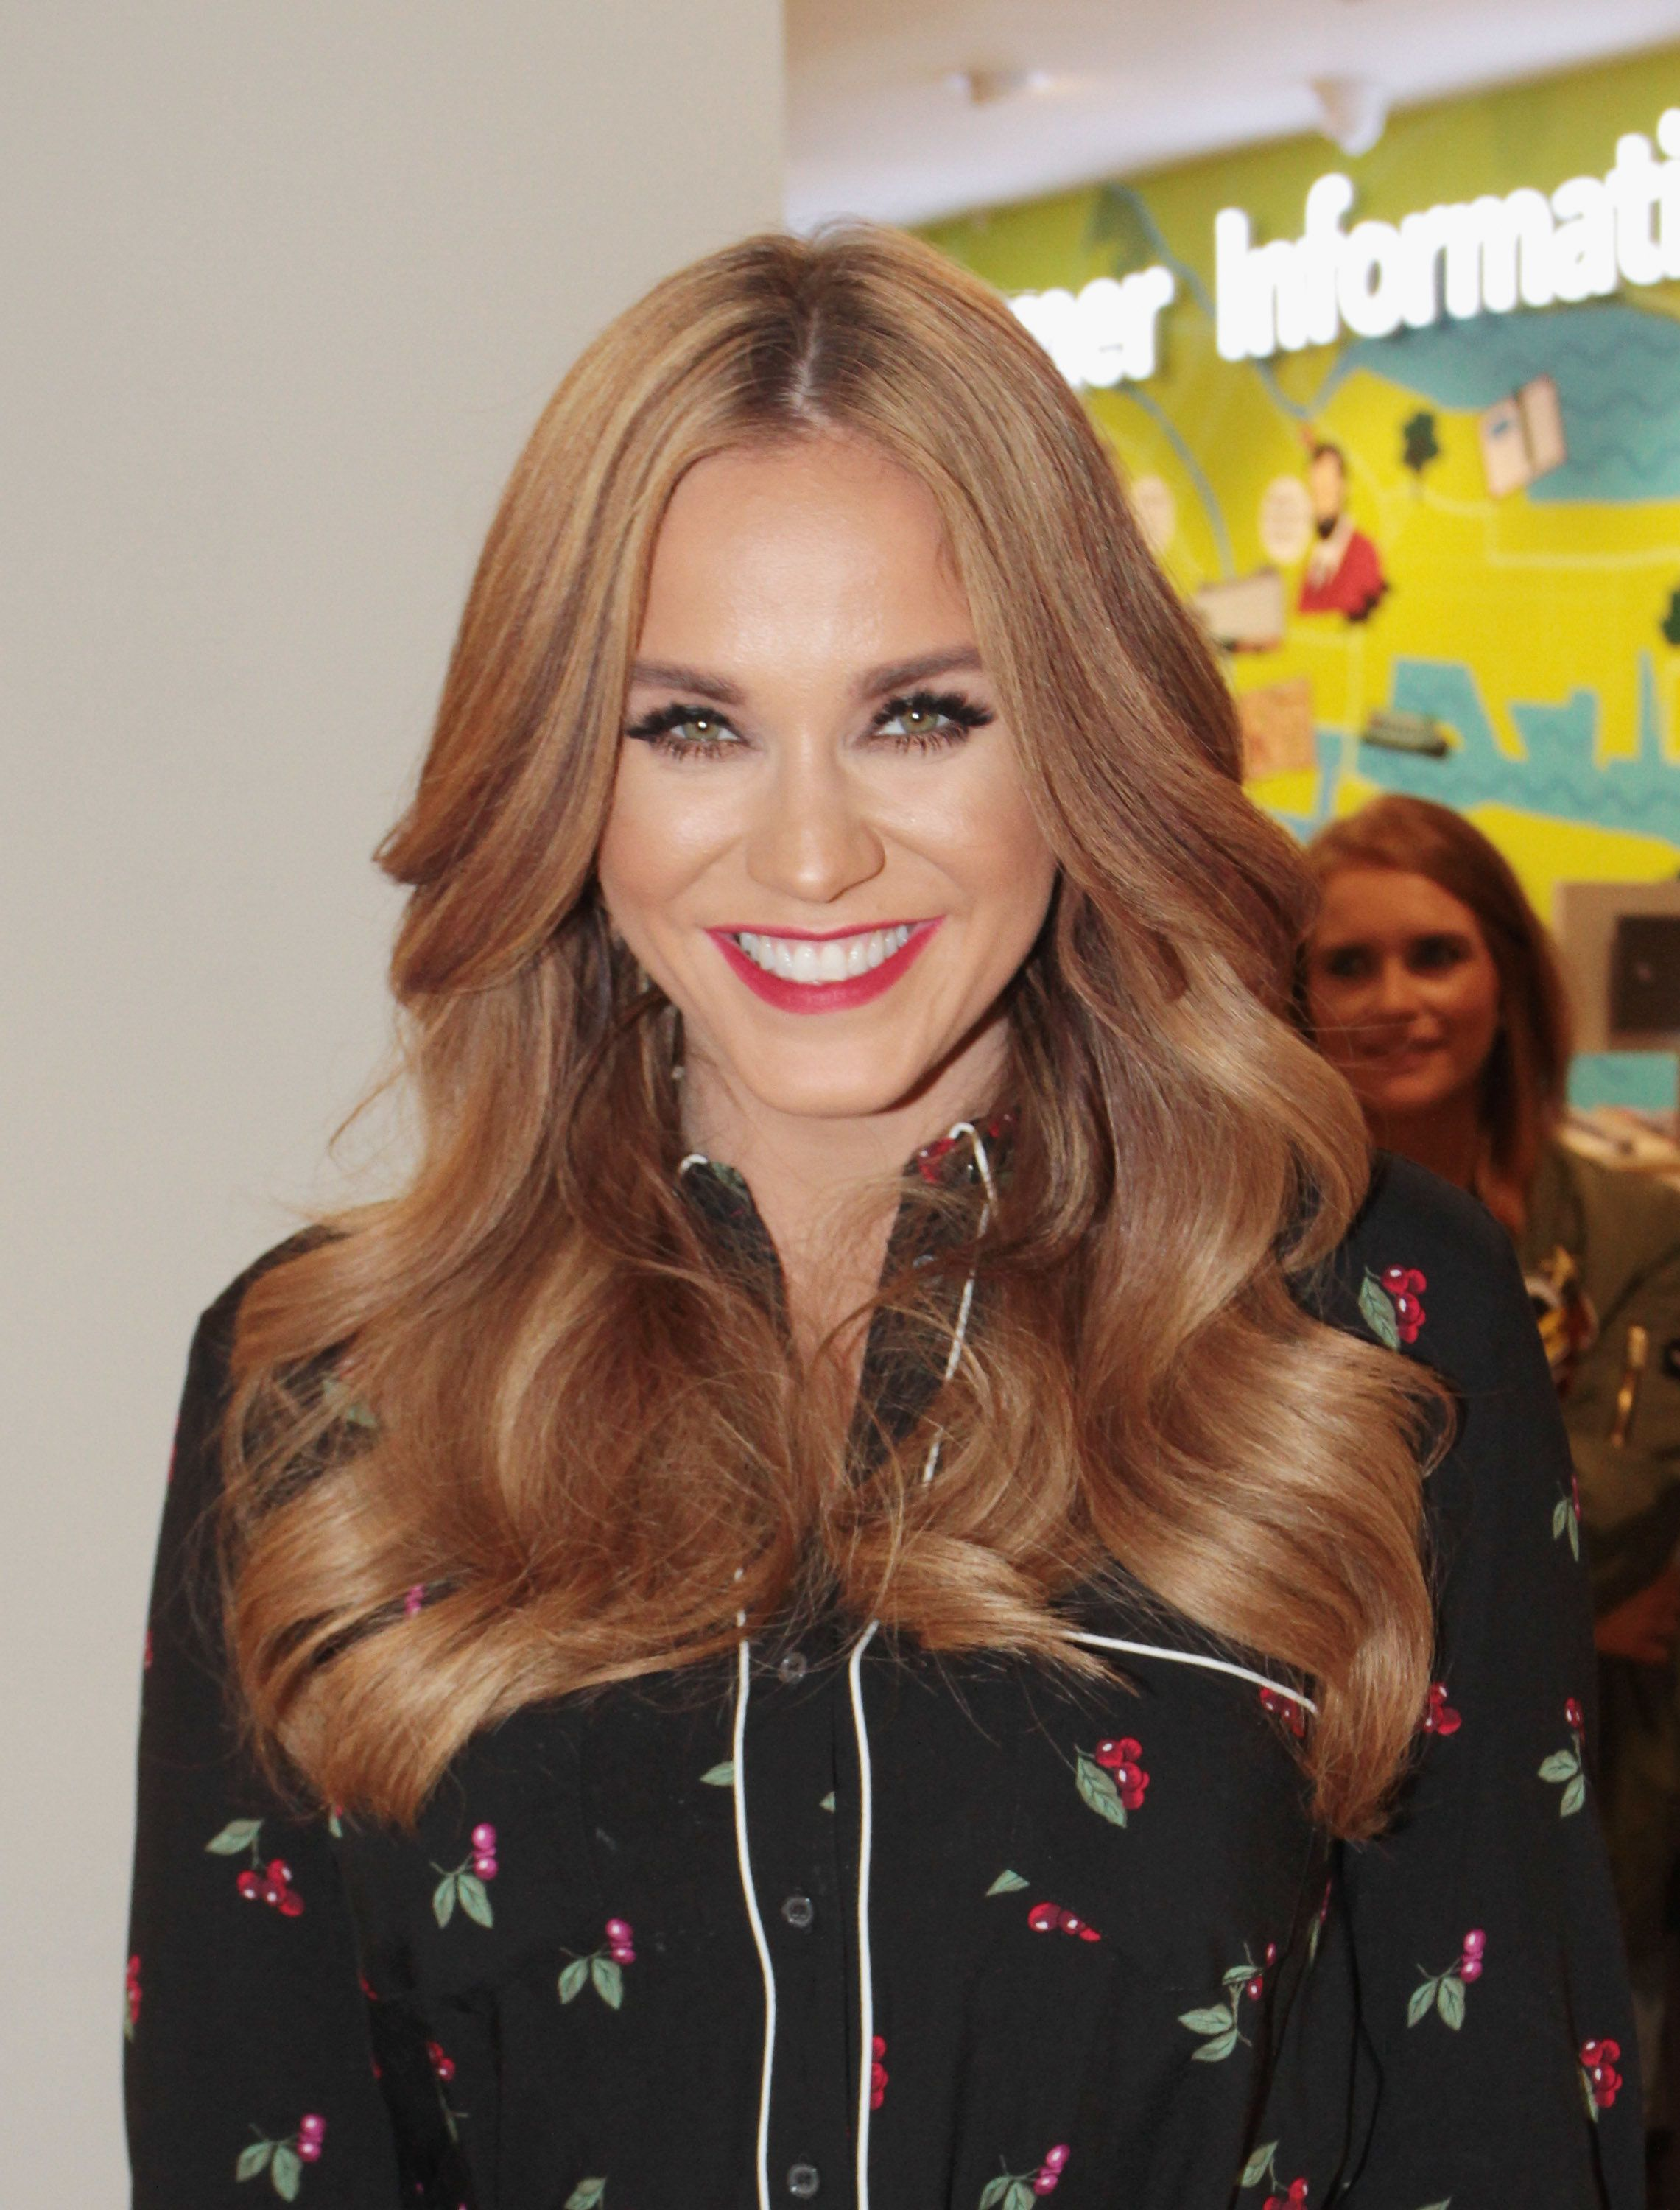 Is This The Real Reason Why Vicky Pattison Quit 'Loose